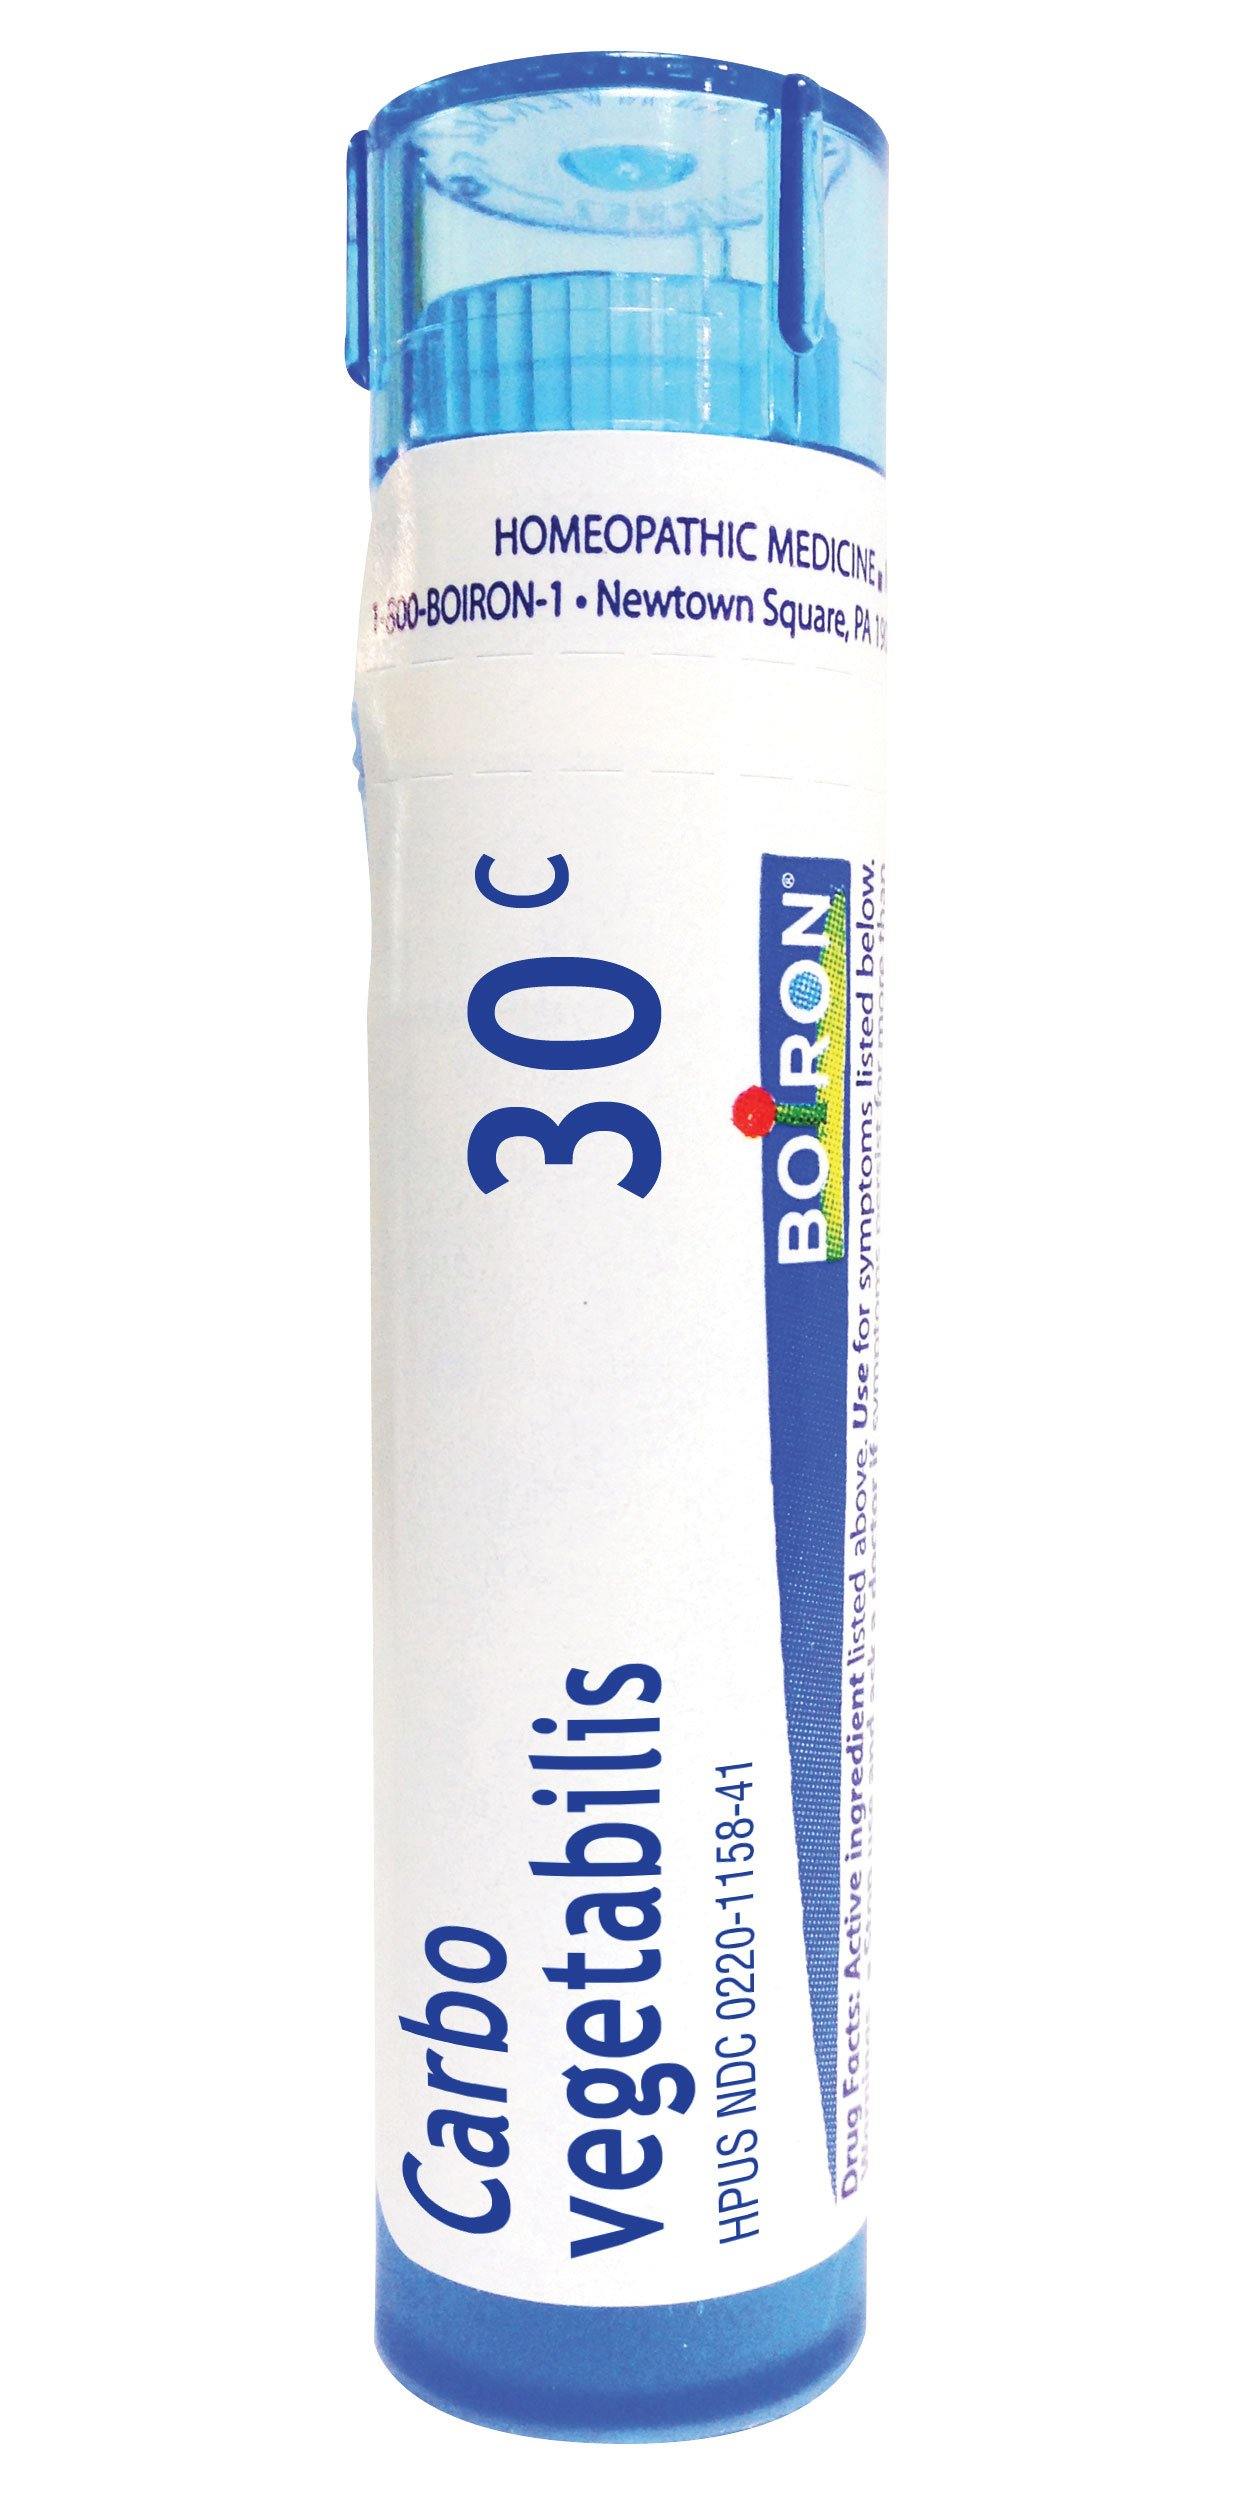 Boiron Homeopathic Medicine Carbo Vegetabilis, 30C Pellets, 80-Count Tubes (Pack of 5)